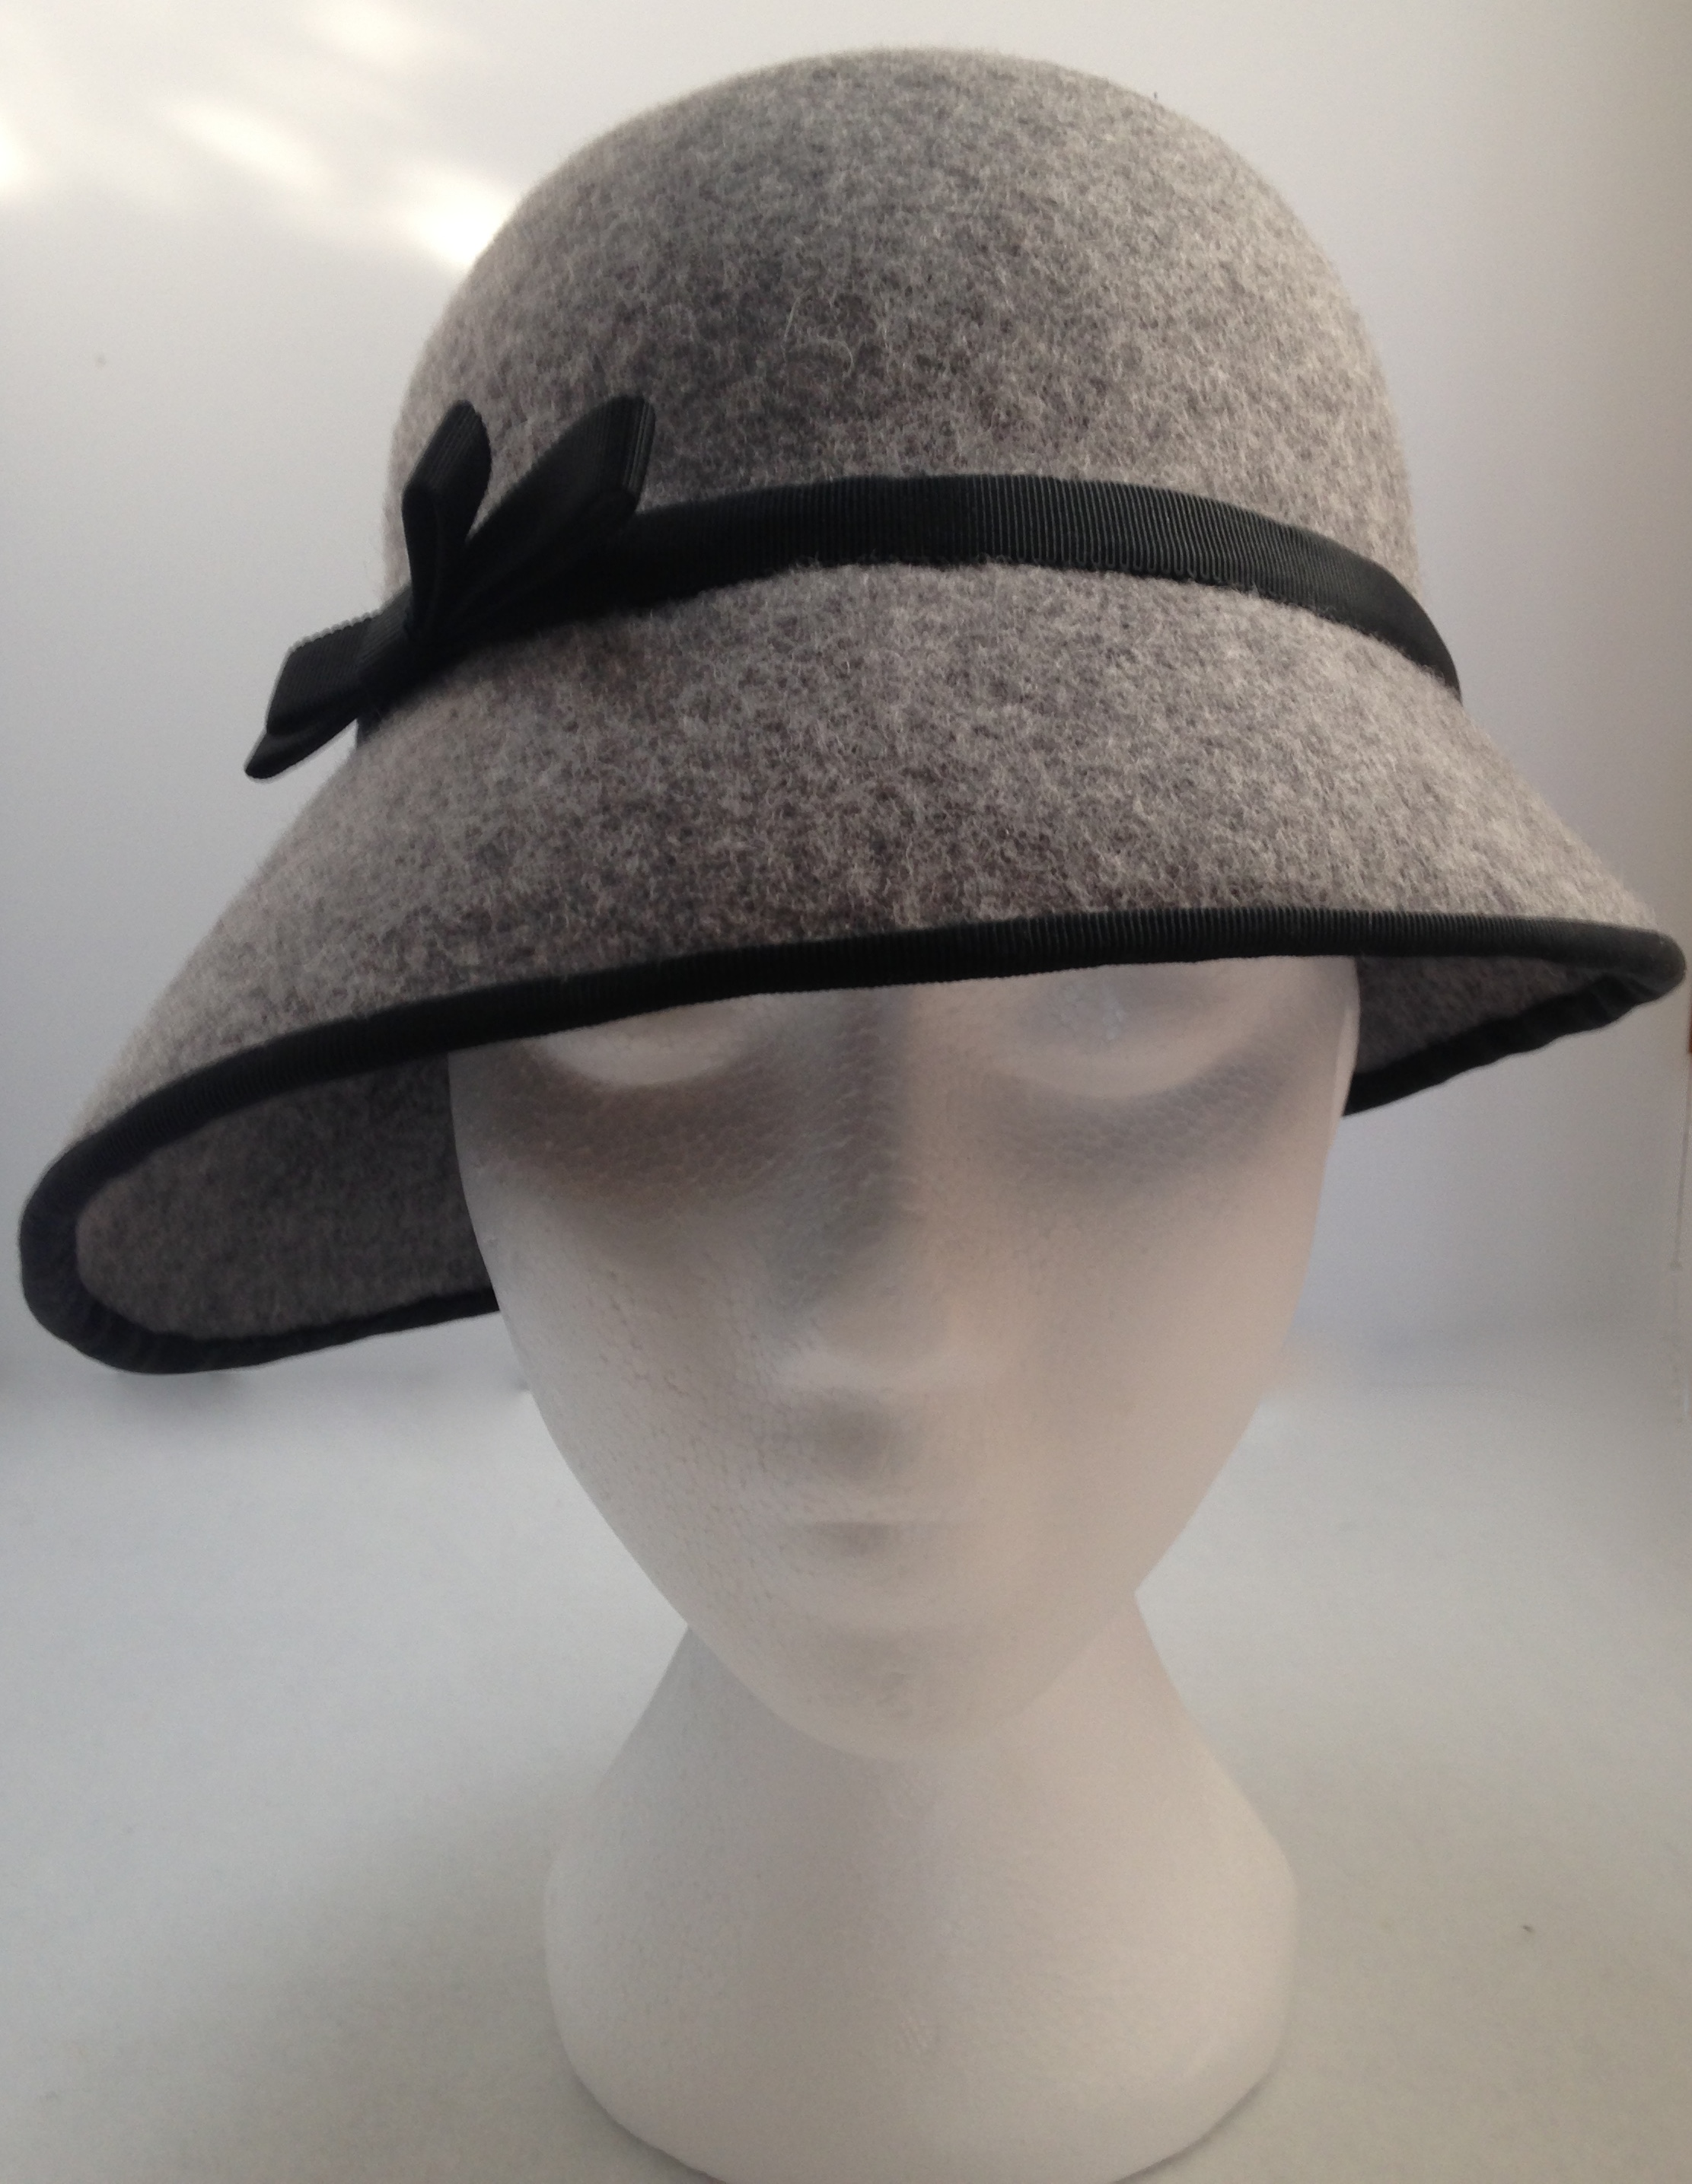 How To Make A Cloche Hat : cloche, Guide, Making, Cloche, Thestitchsharer